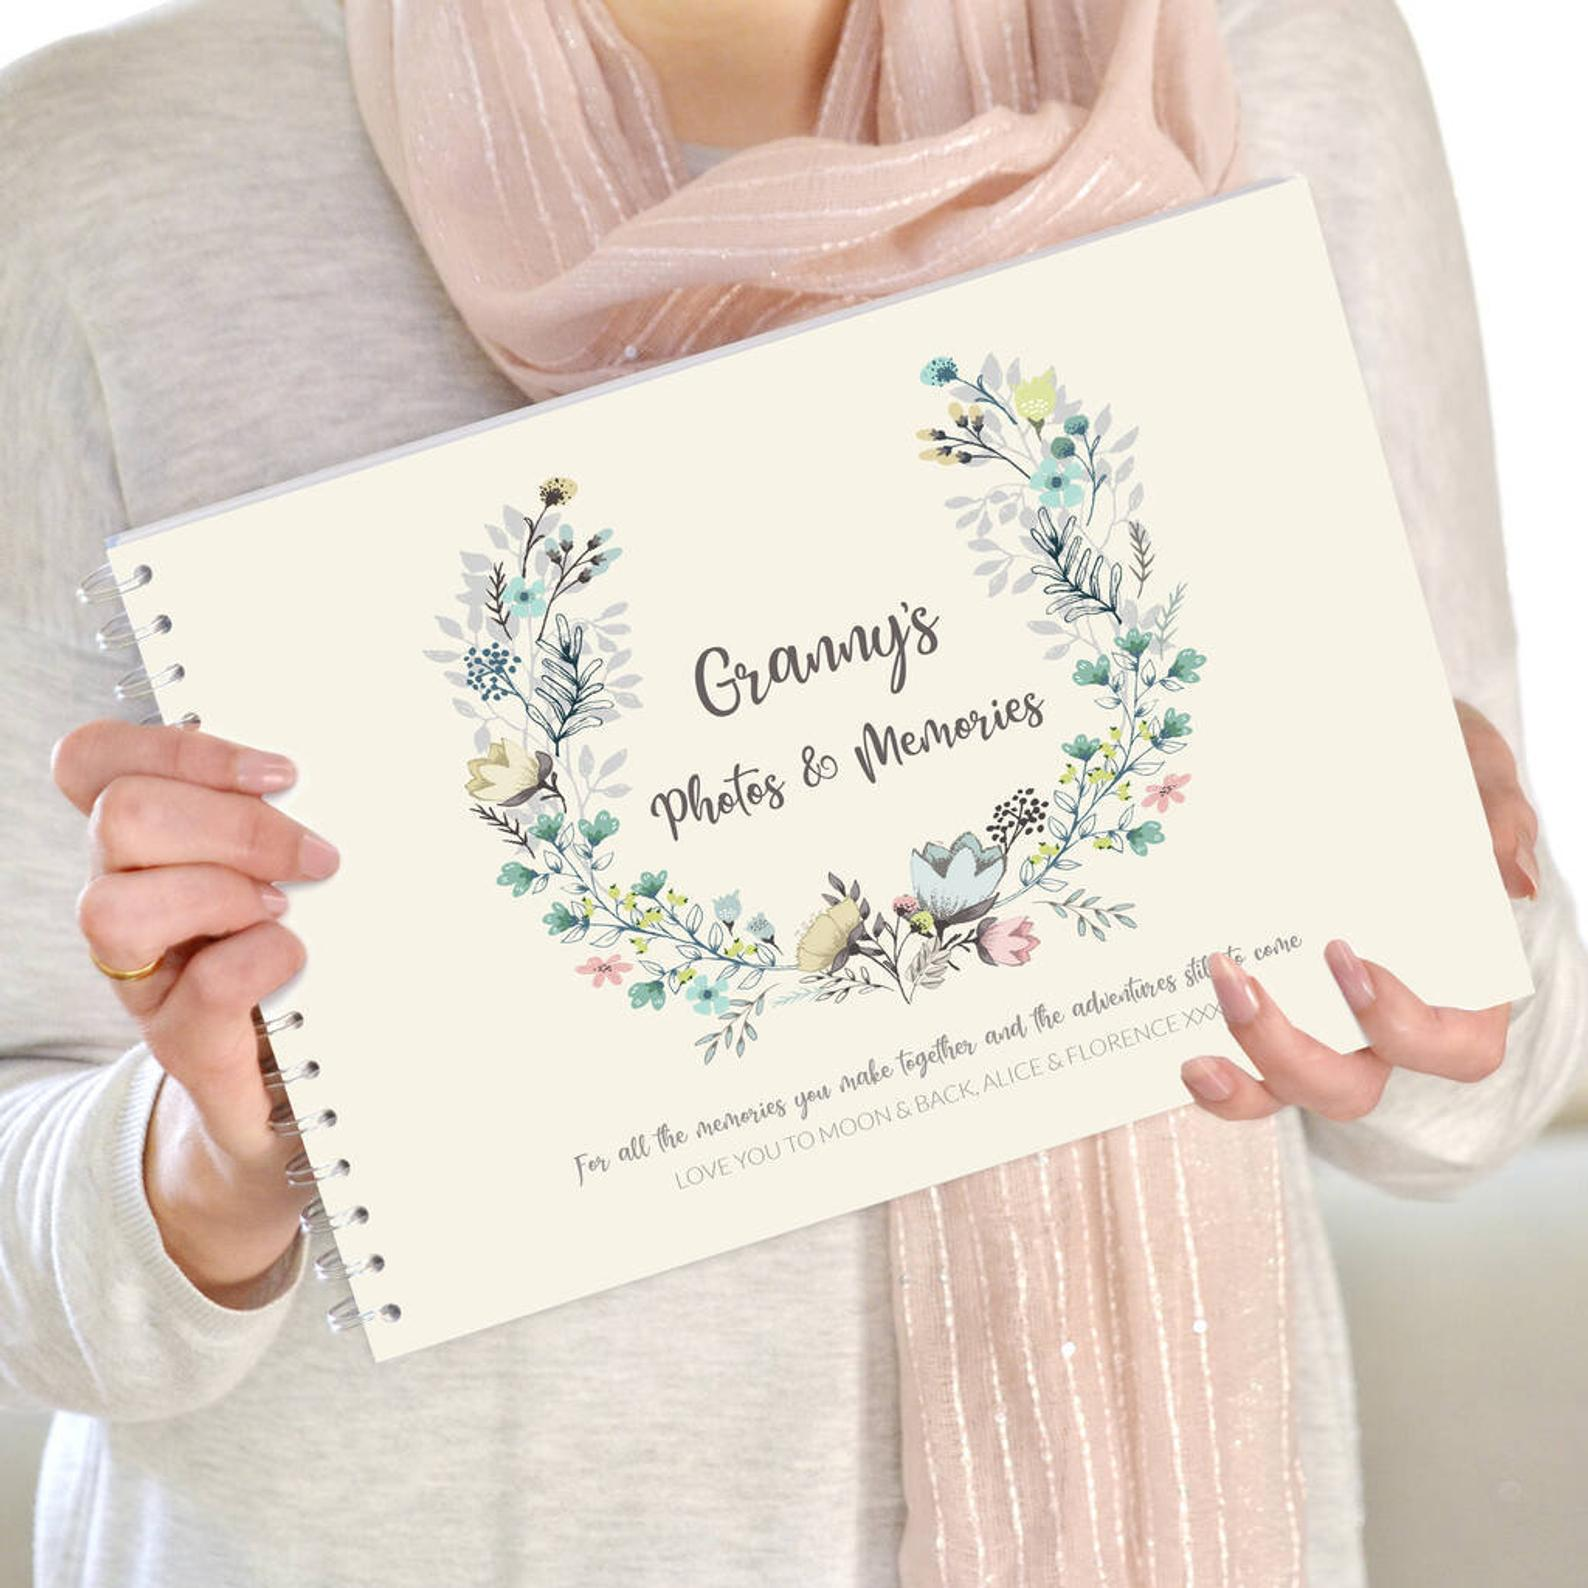 25-gifts-for-new-grandparents-personalized-photo-album